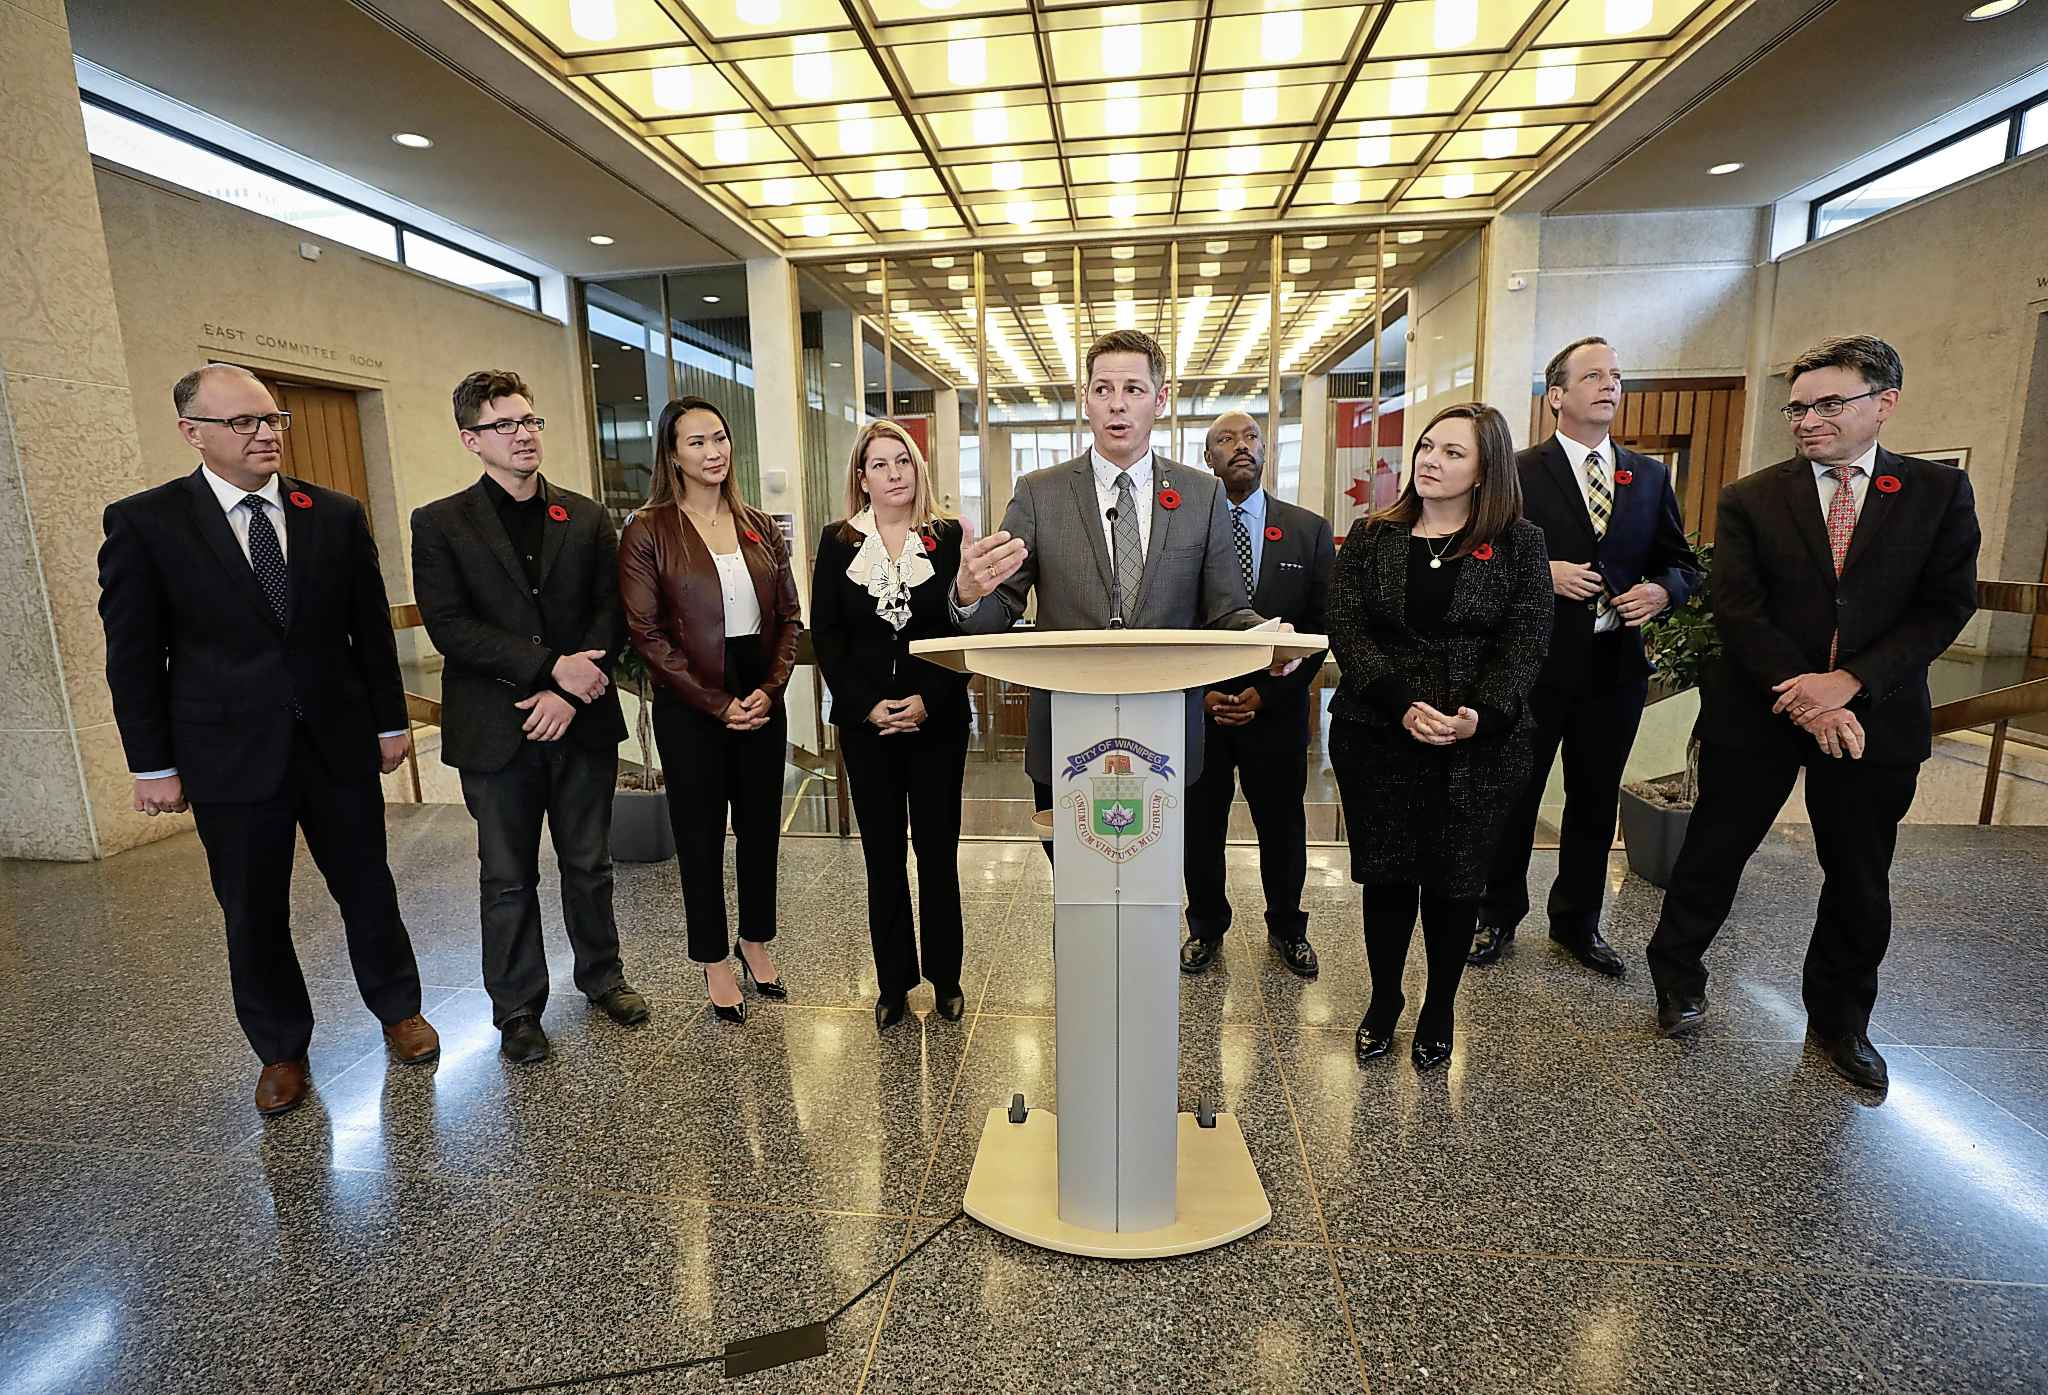 Winnipeg Mayor Brian Bowman introducing members of his EPC at city hall last November. City councillors get a $23,000 pay increase when they become EPC members.